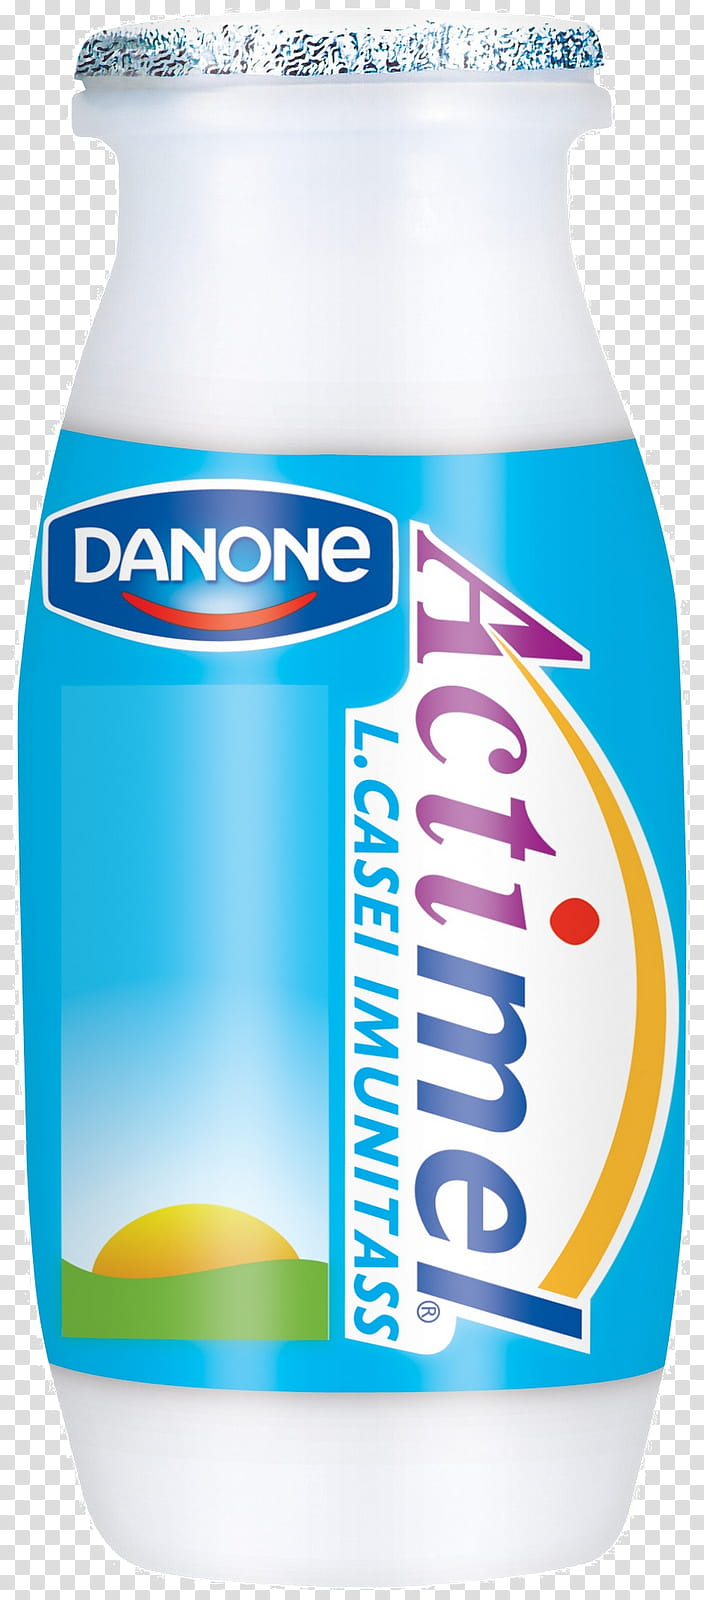 Actimel PNG clipart images free download.